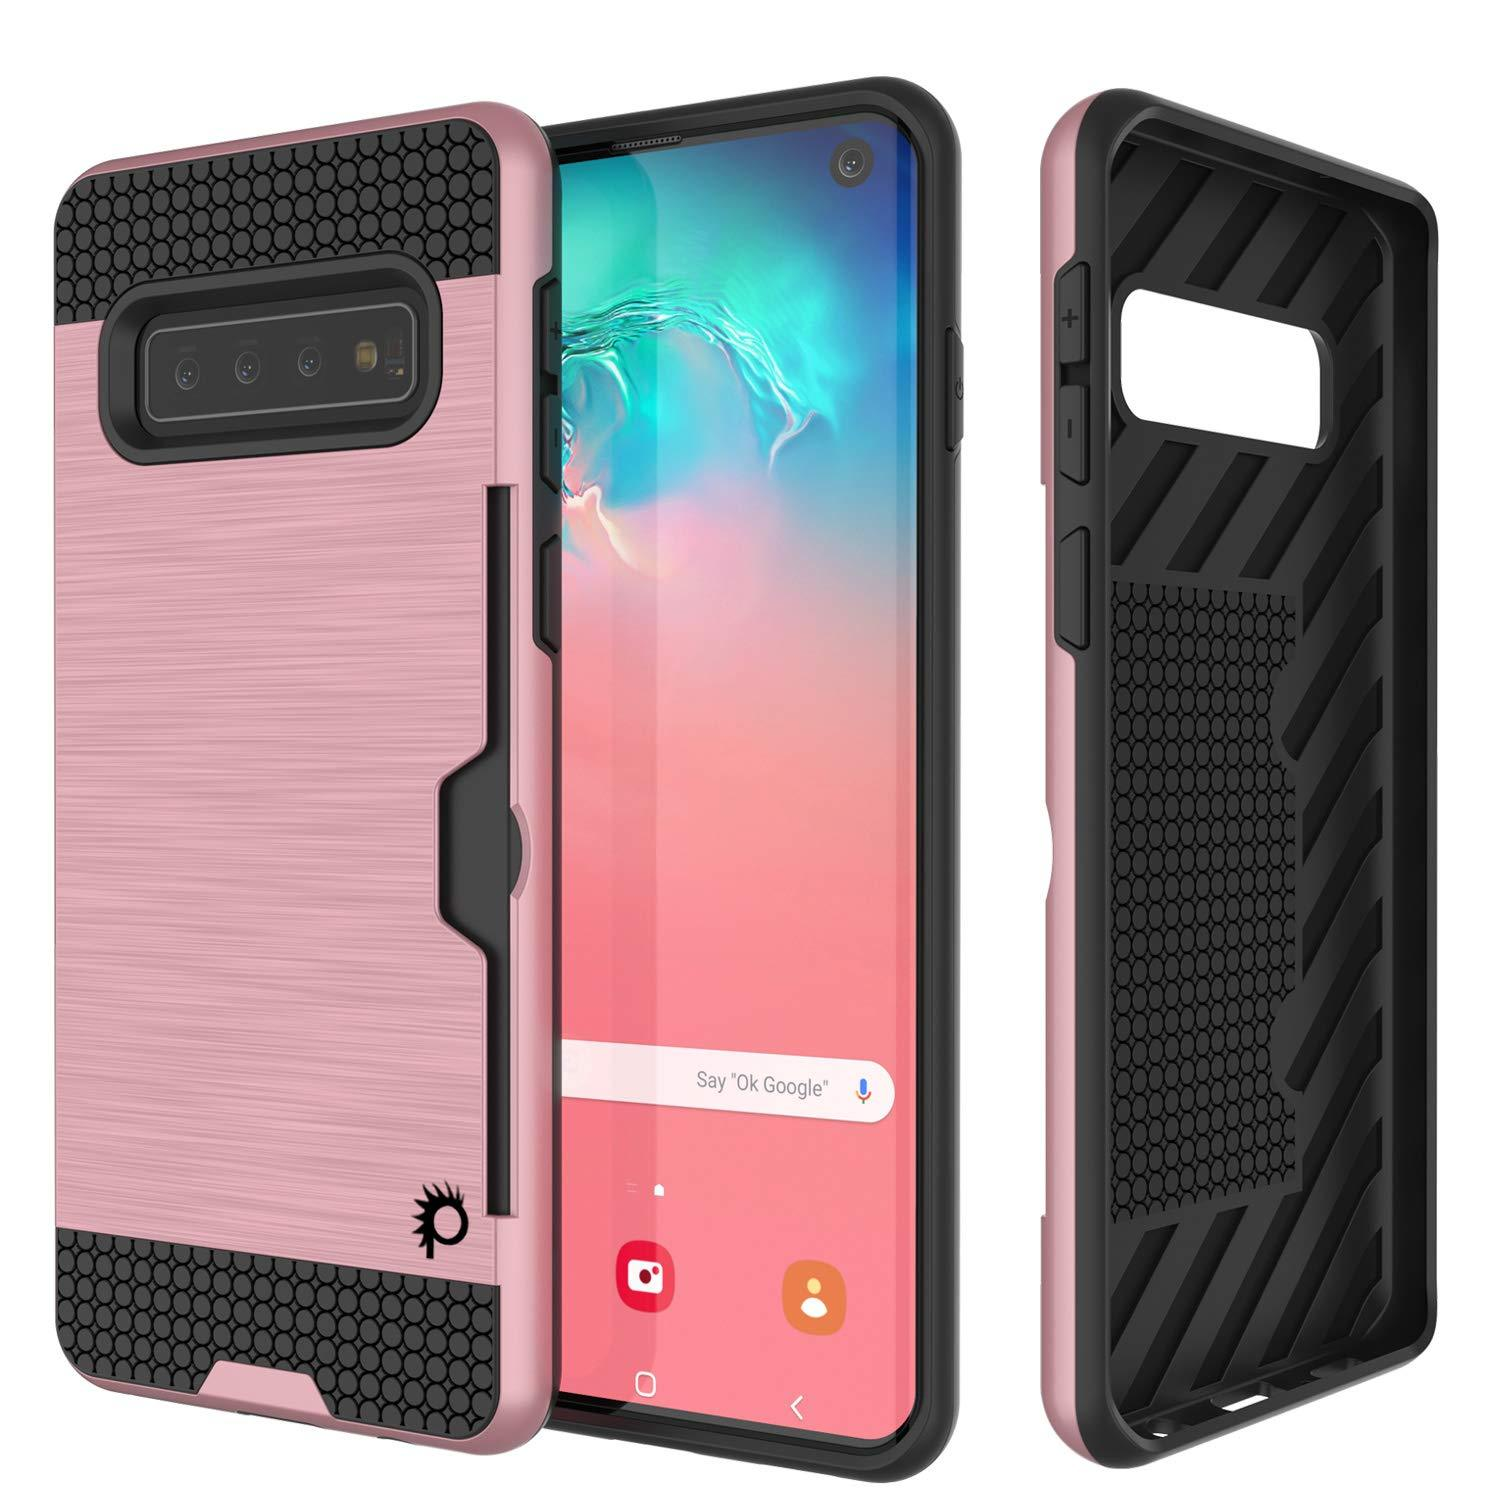 Galaxy S10 Case, PUNKcase [SLOT Series] [Slim Fit] Dual-Layer Armor Cover w/Integrated Anti-Shock System, Credit Card Slot [Rose Gold]